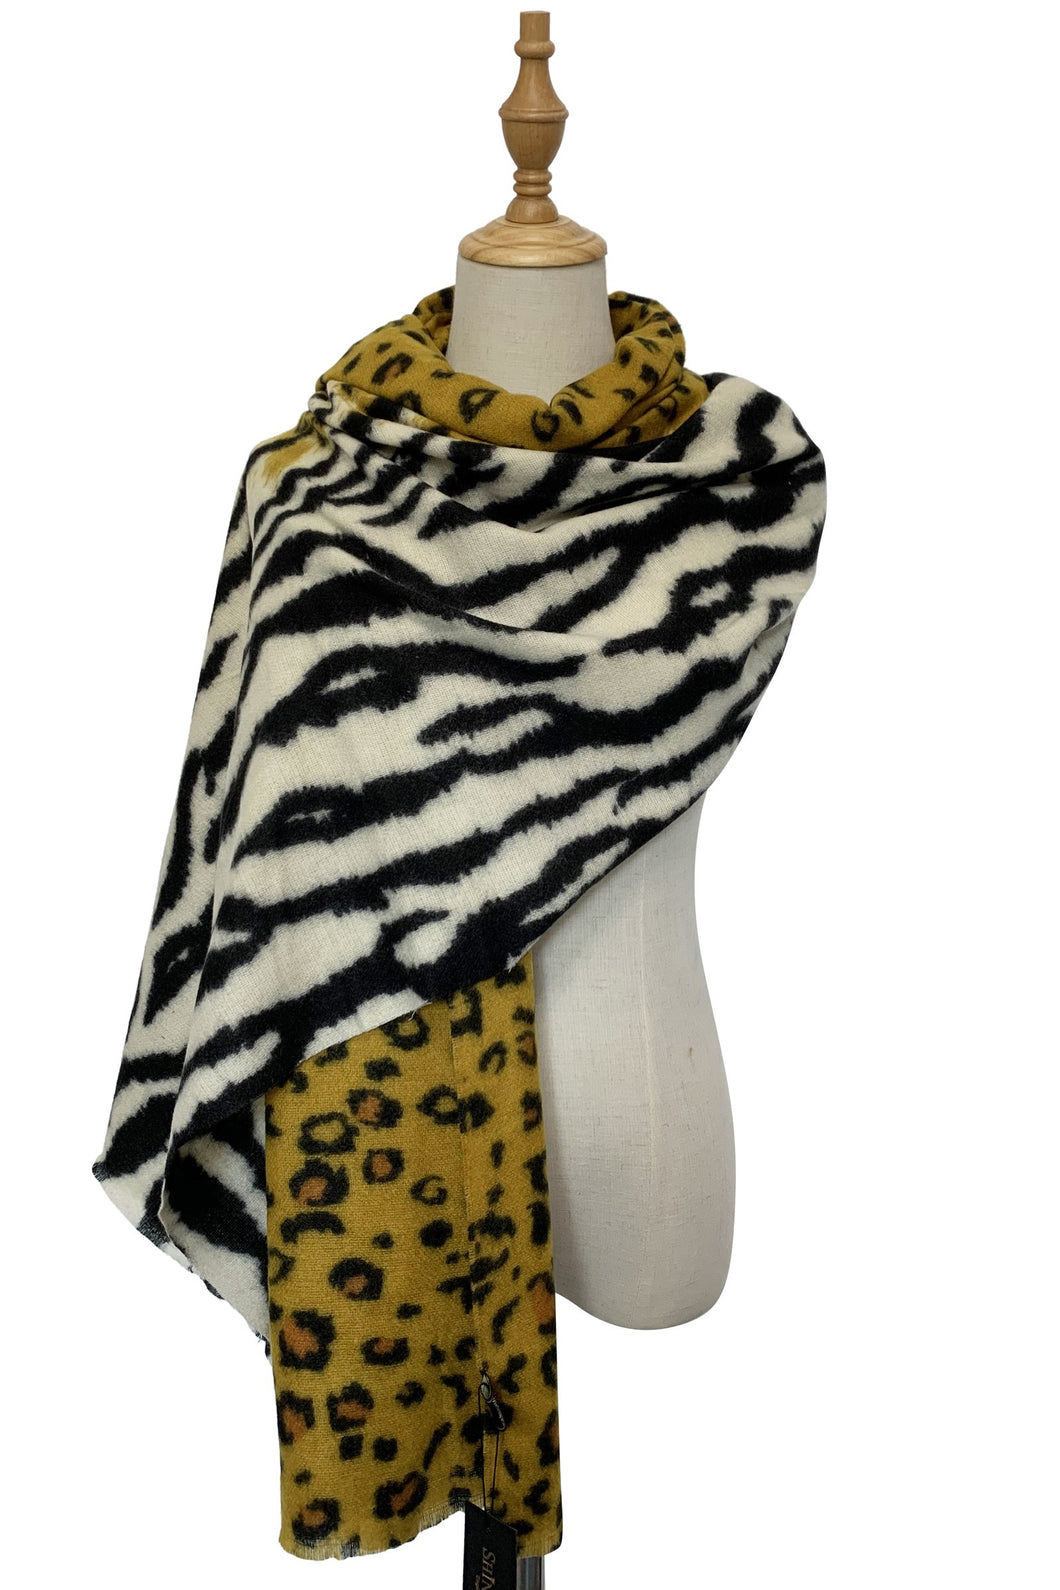 LEOPARD AND ZEBRA PRINT SCARF